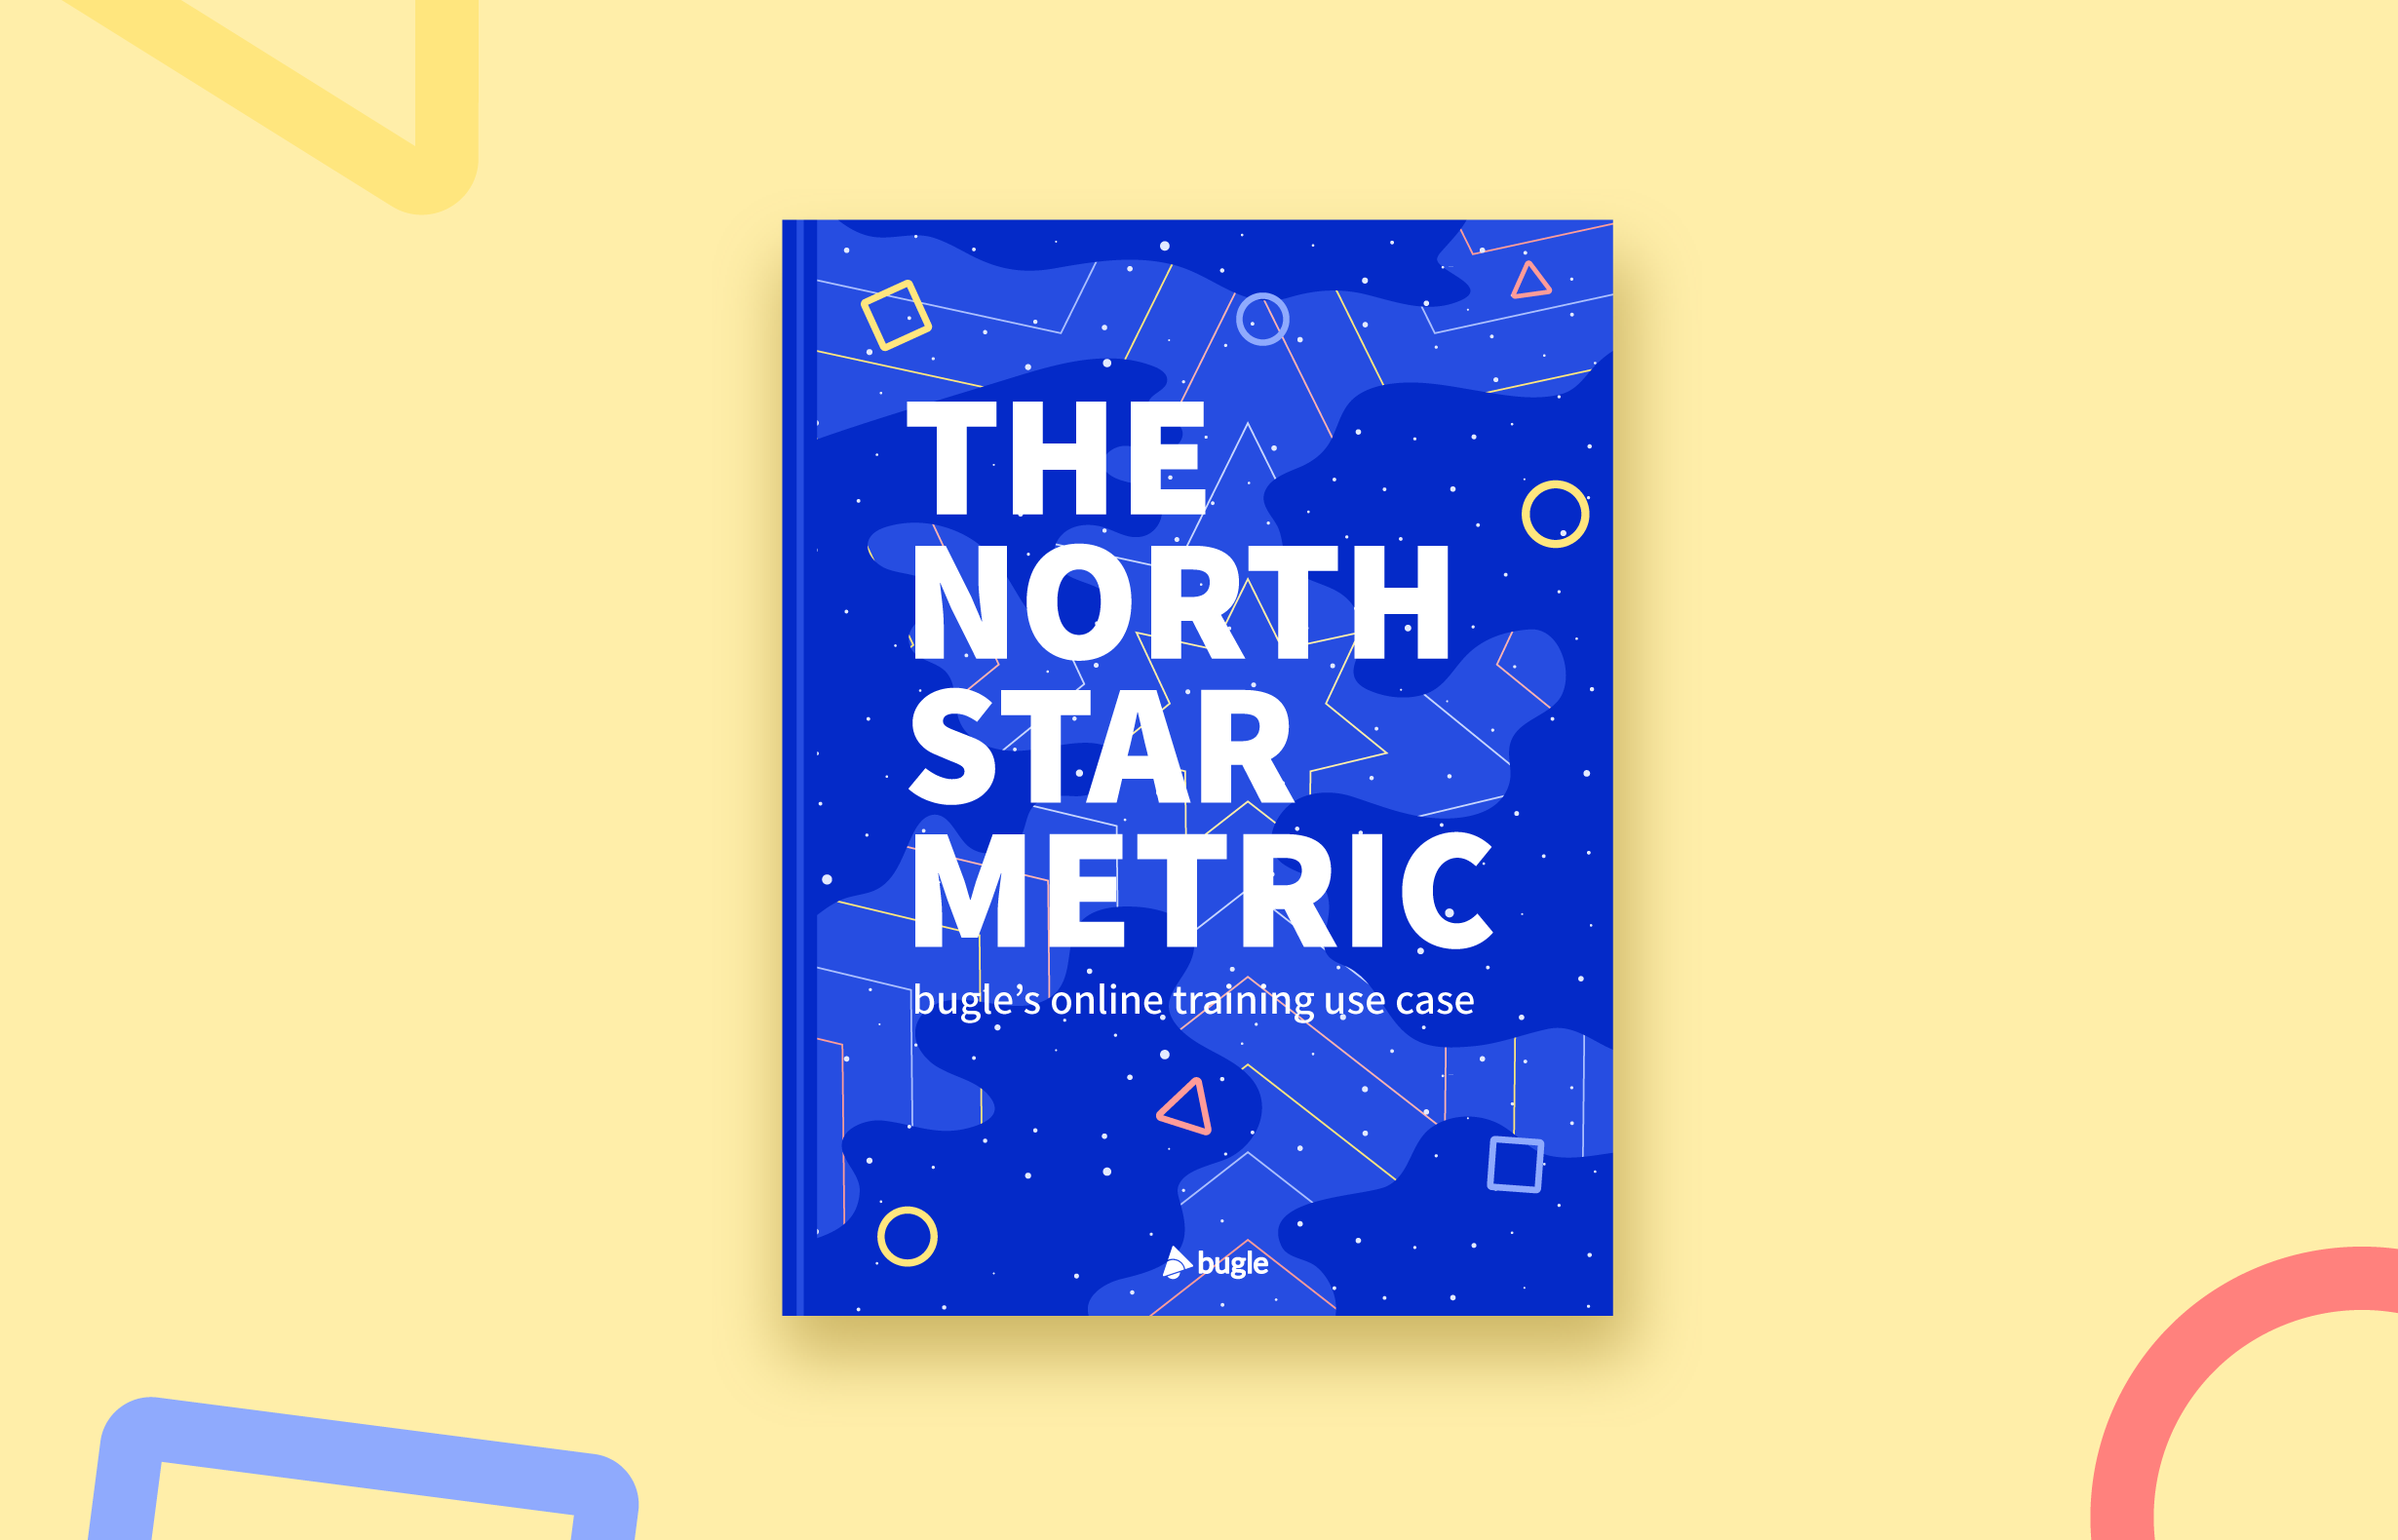 The North Star Metric